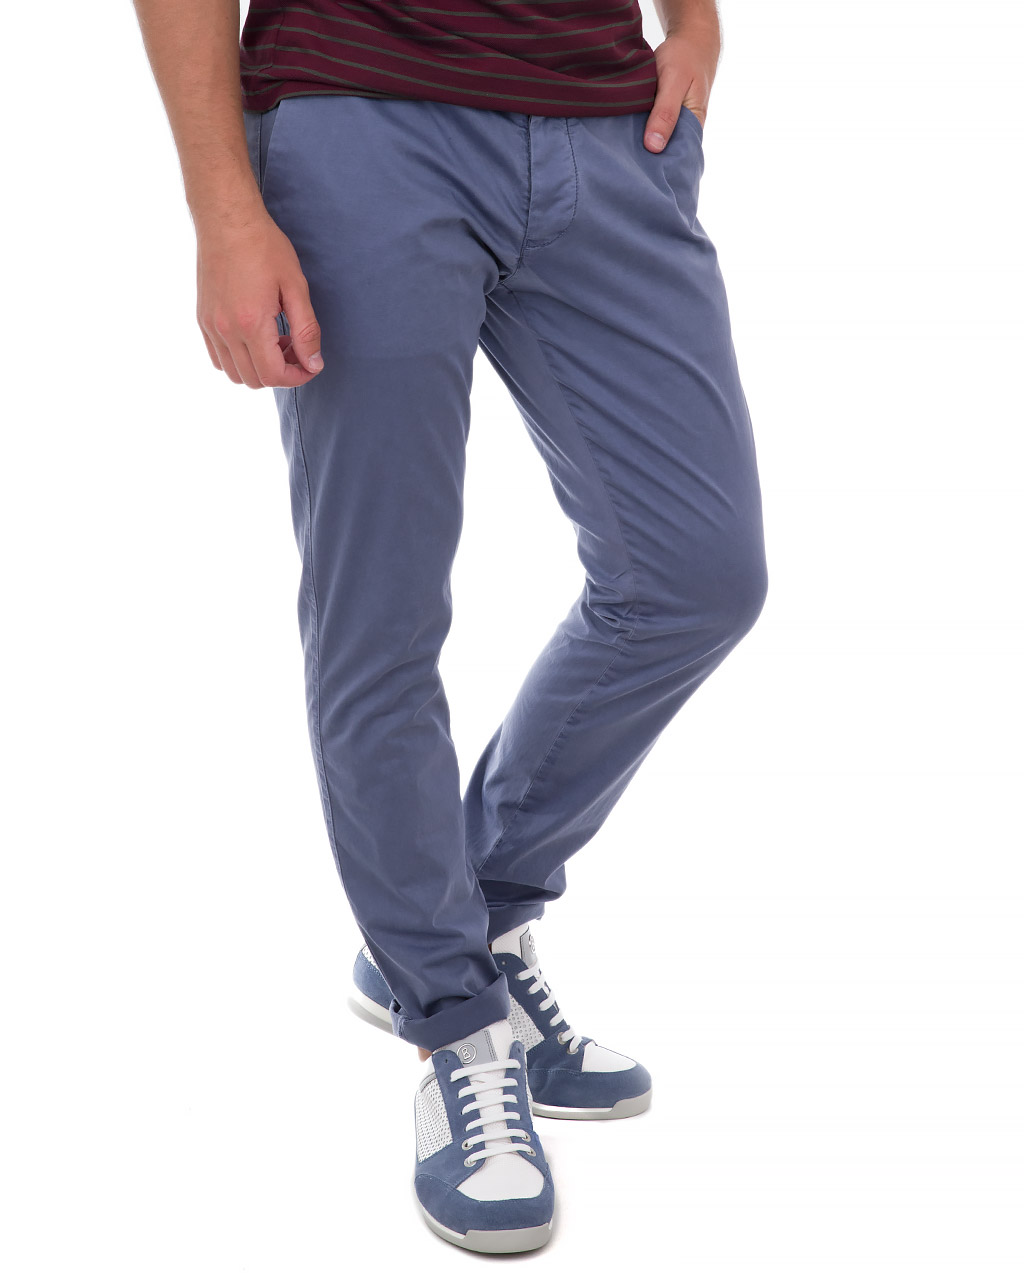 Men's trousers 8351-430-941/9 (2)